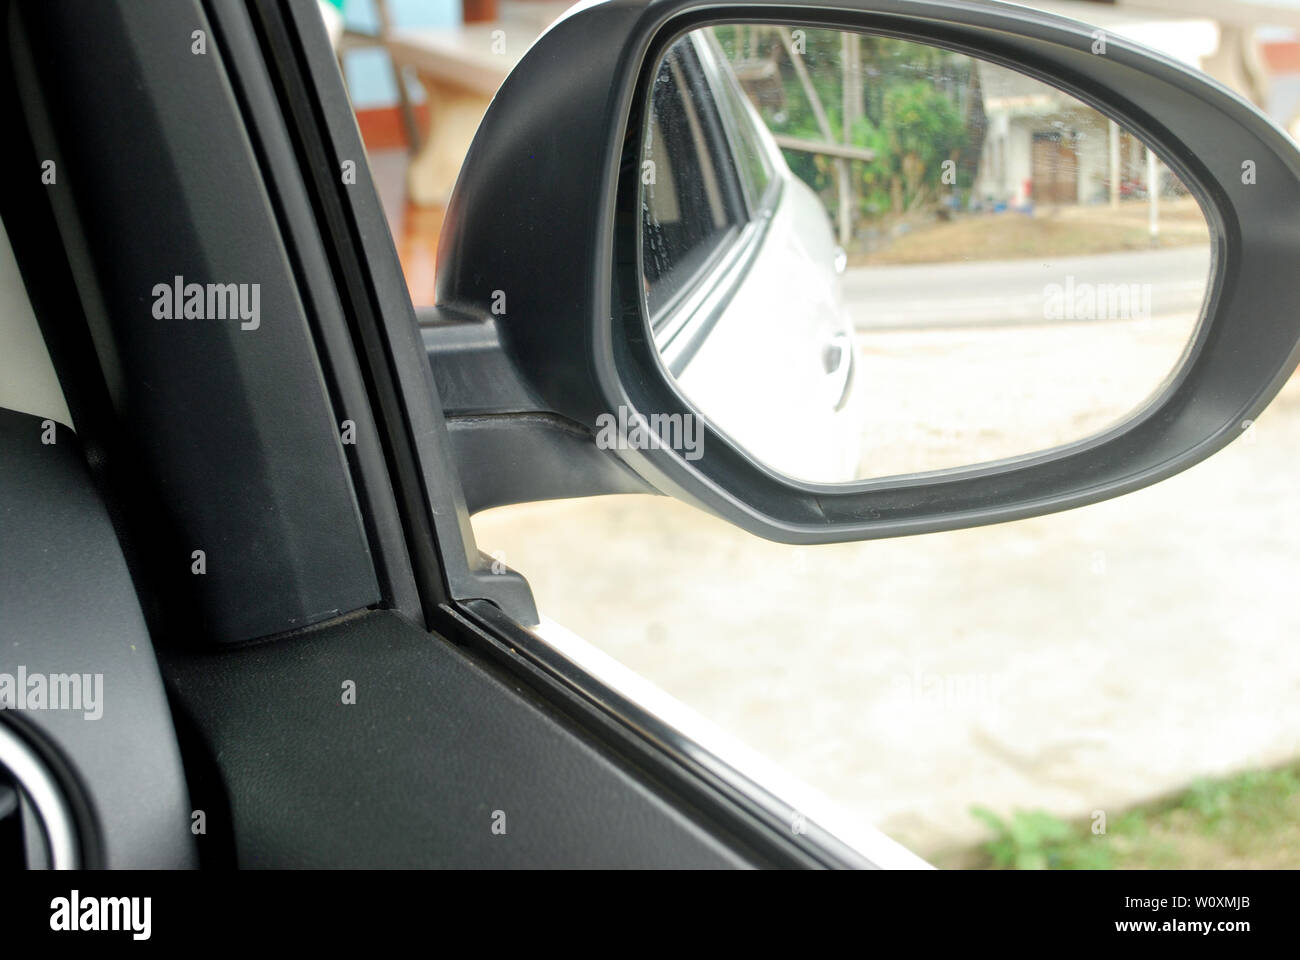 Car Accessories Stock Photos & Car Accessories Stock Images